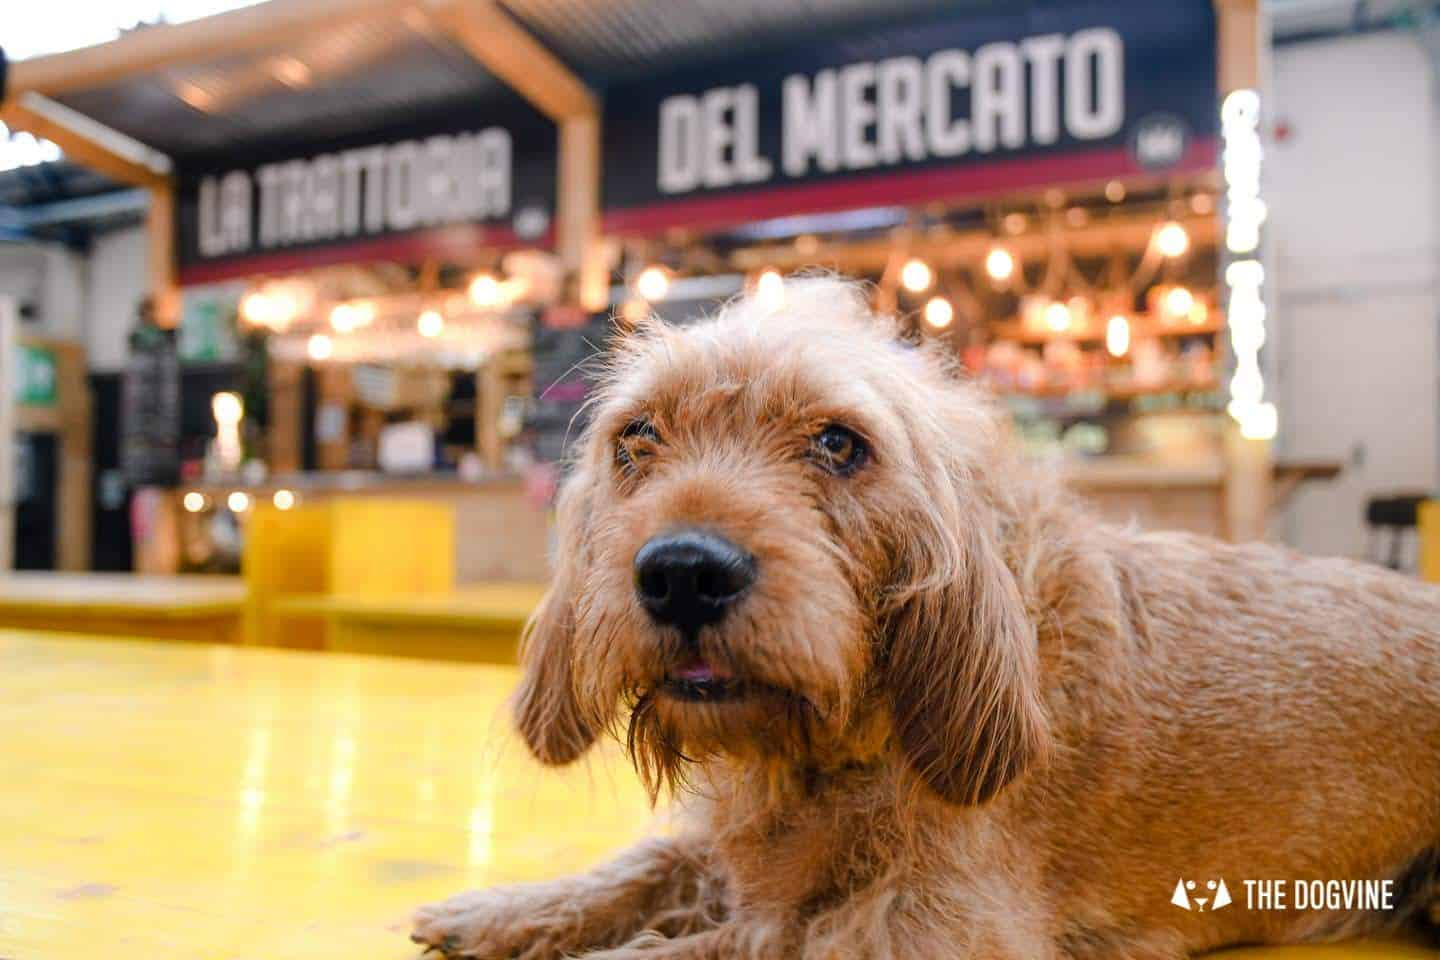 My Dog Friendly London By Amber - Dog Friendly Elephant & Castle - Mercato Metropolitano 20